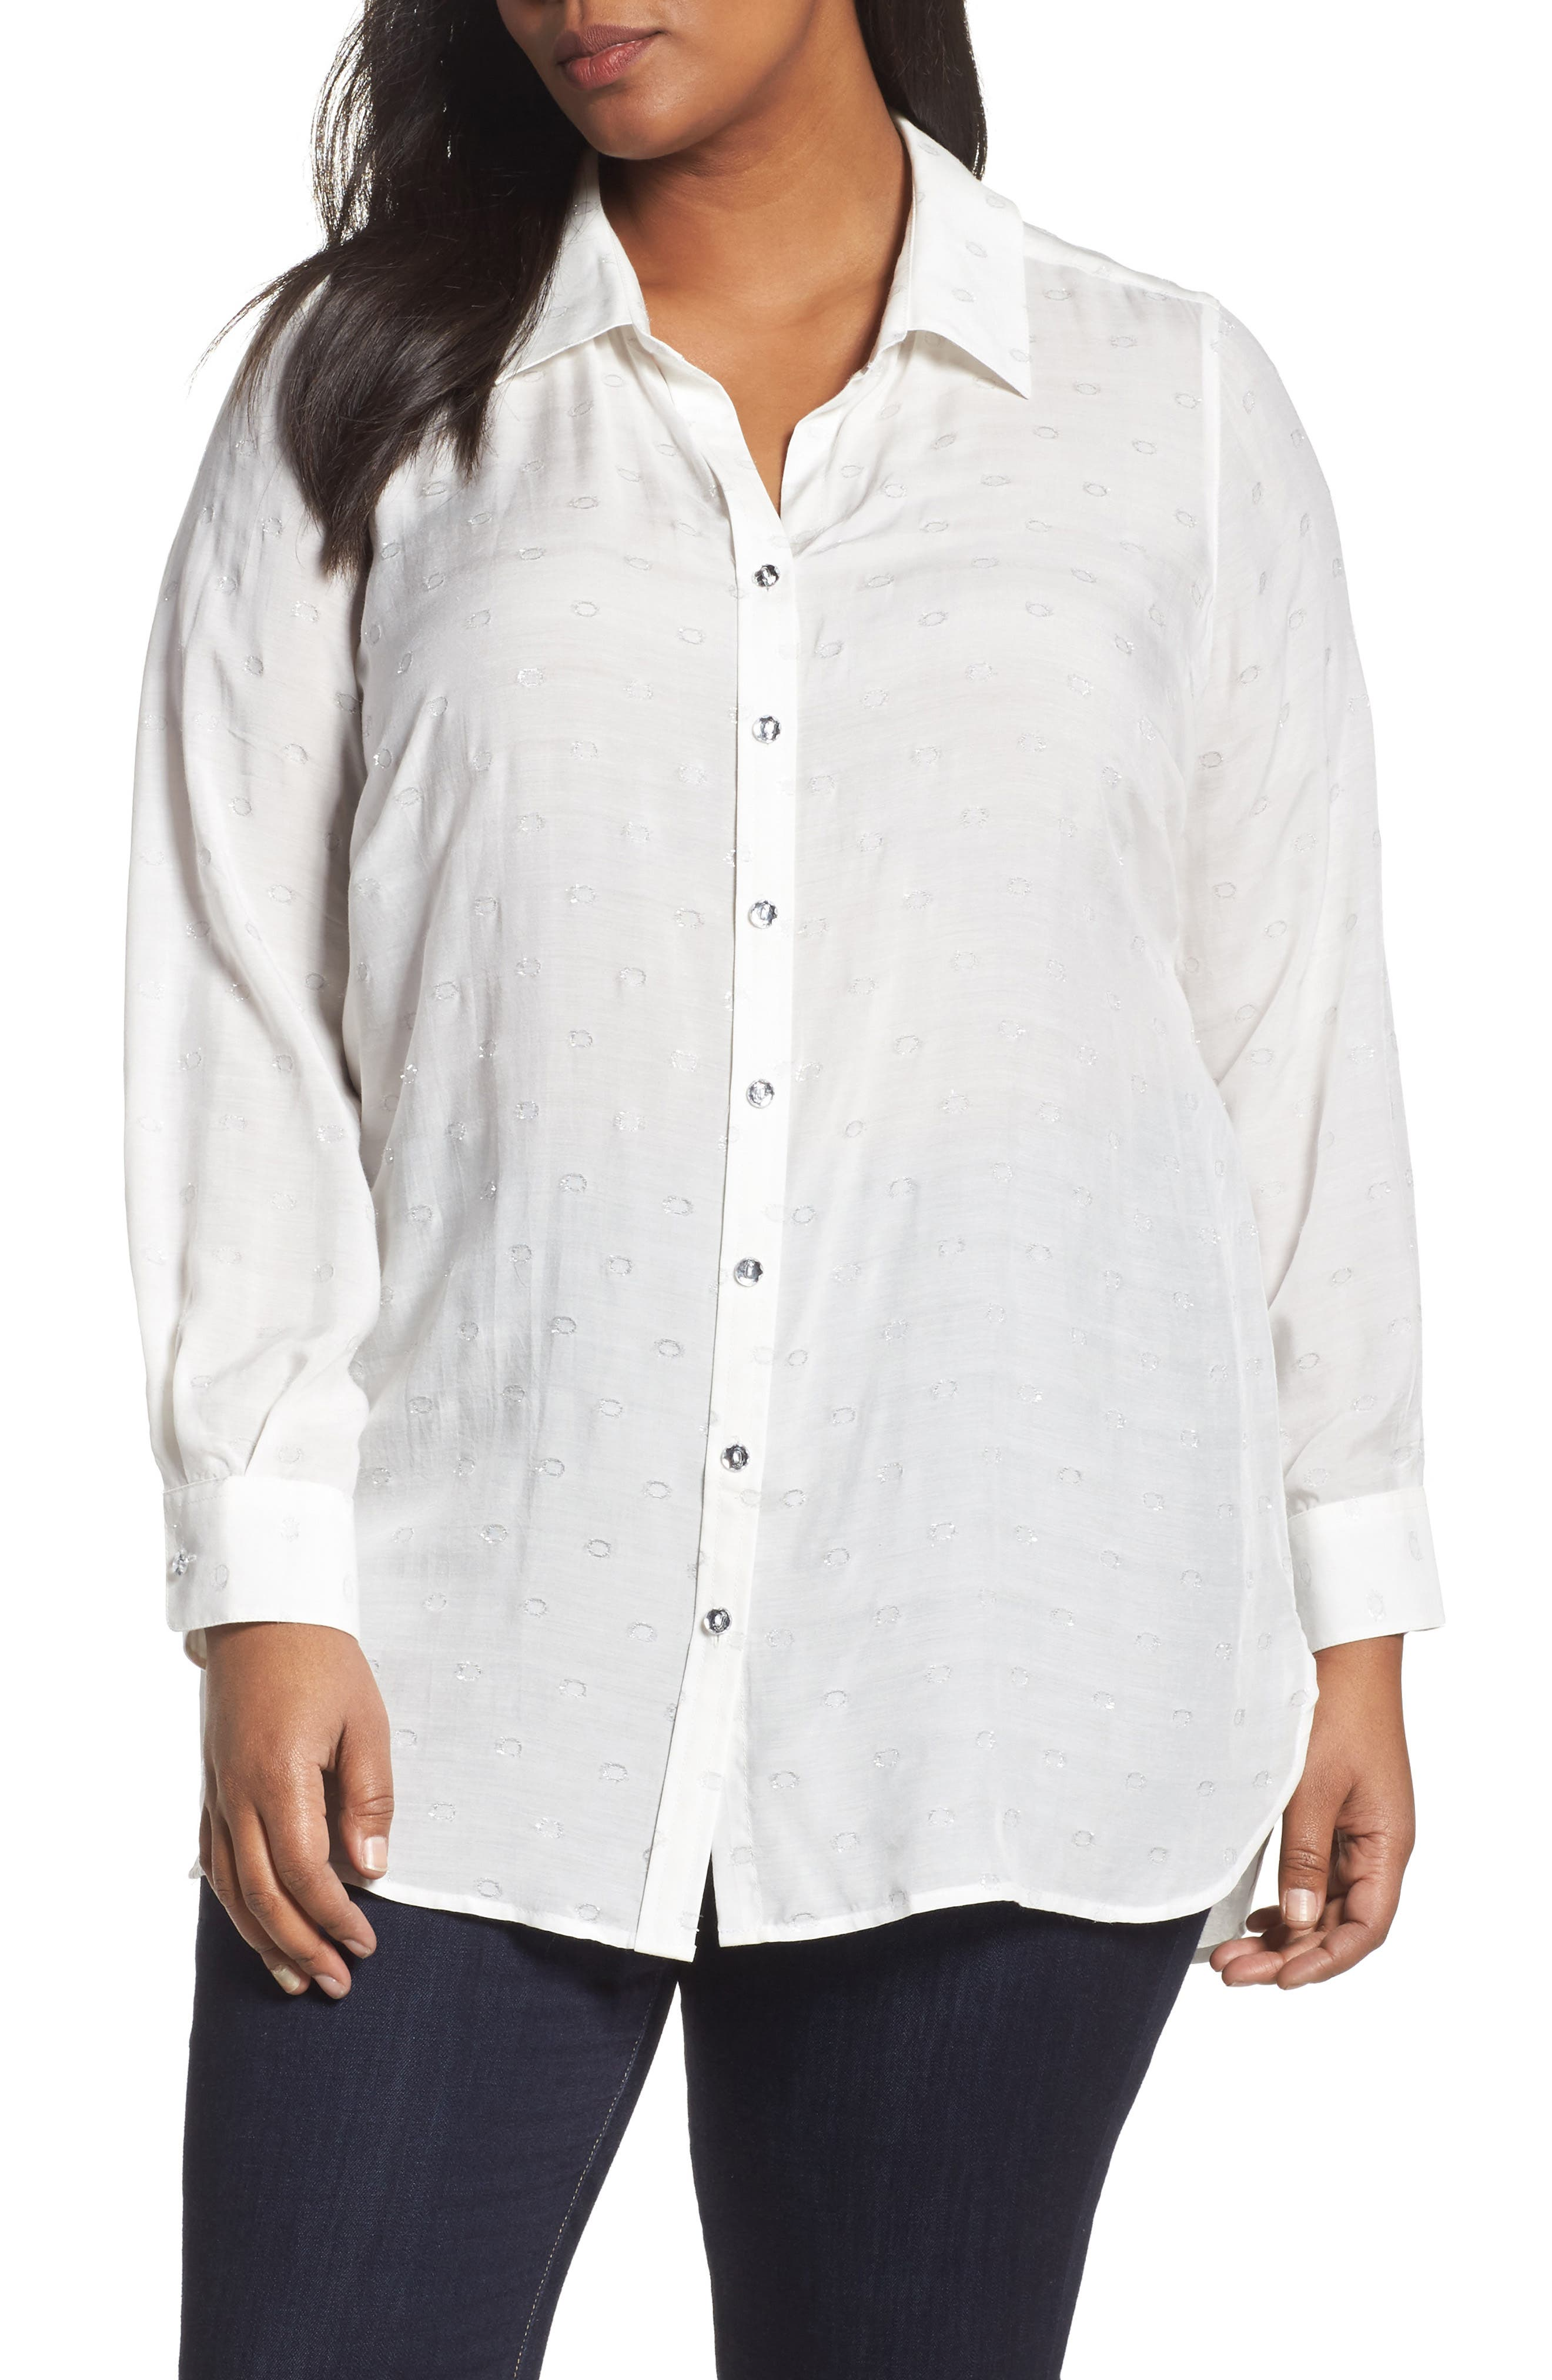 Alternate Image 1 Selected - Foxcroft Jade Metallic Clip Dot Shirt (Plus Size)